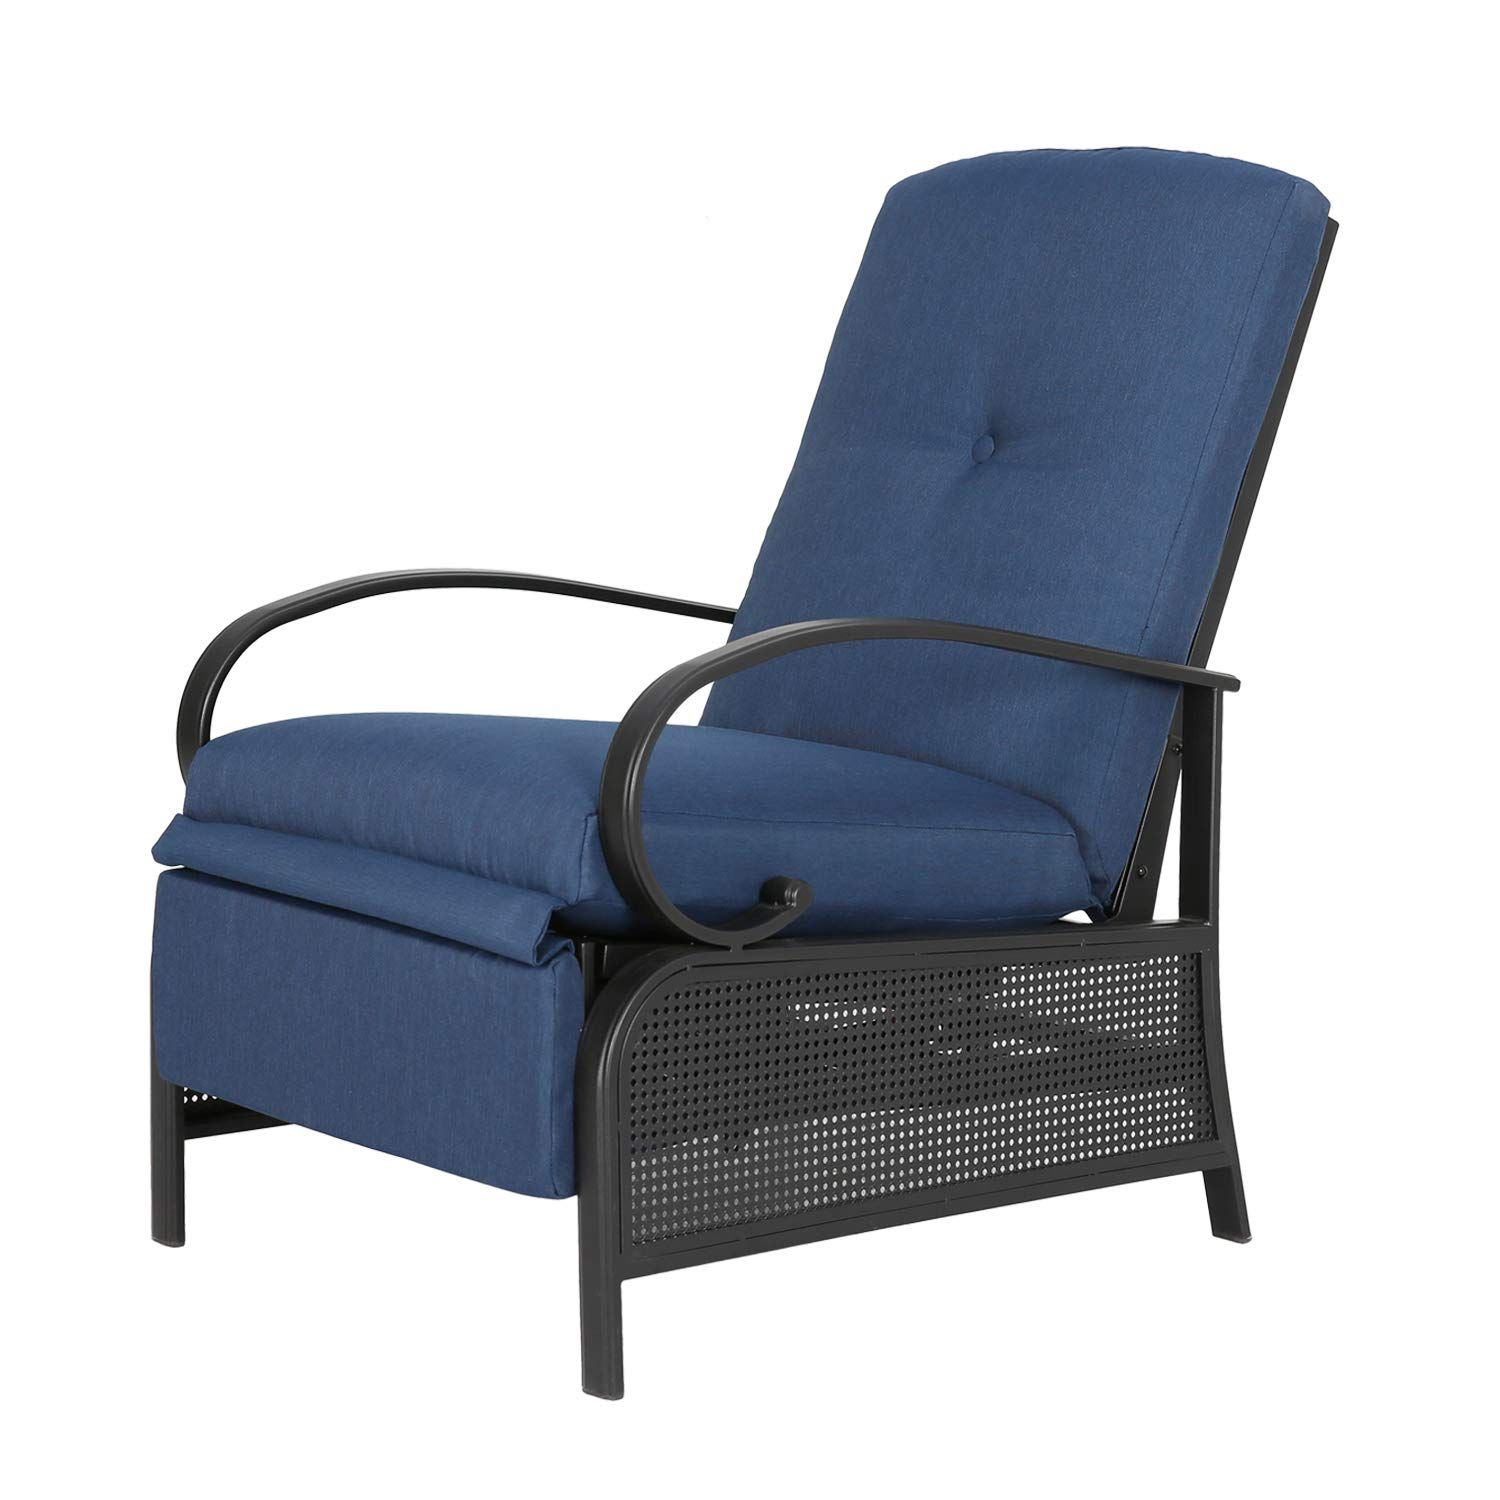 Ulax Furniture Patio Recliner Chair Automatic Adjustable Back Outdoor Lounge Chair With 100 Olefin Cushion N Patio Chairs Lounge Chair Outdoor Recliner Chair